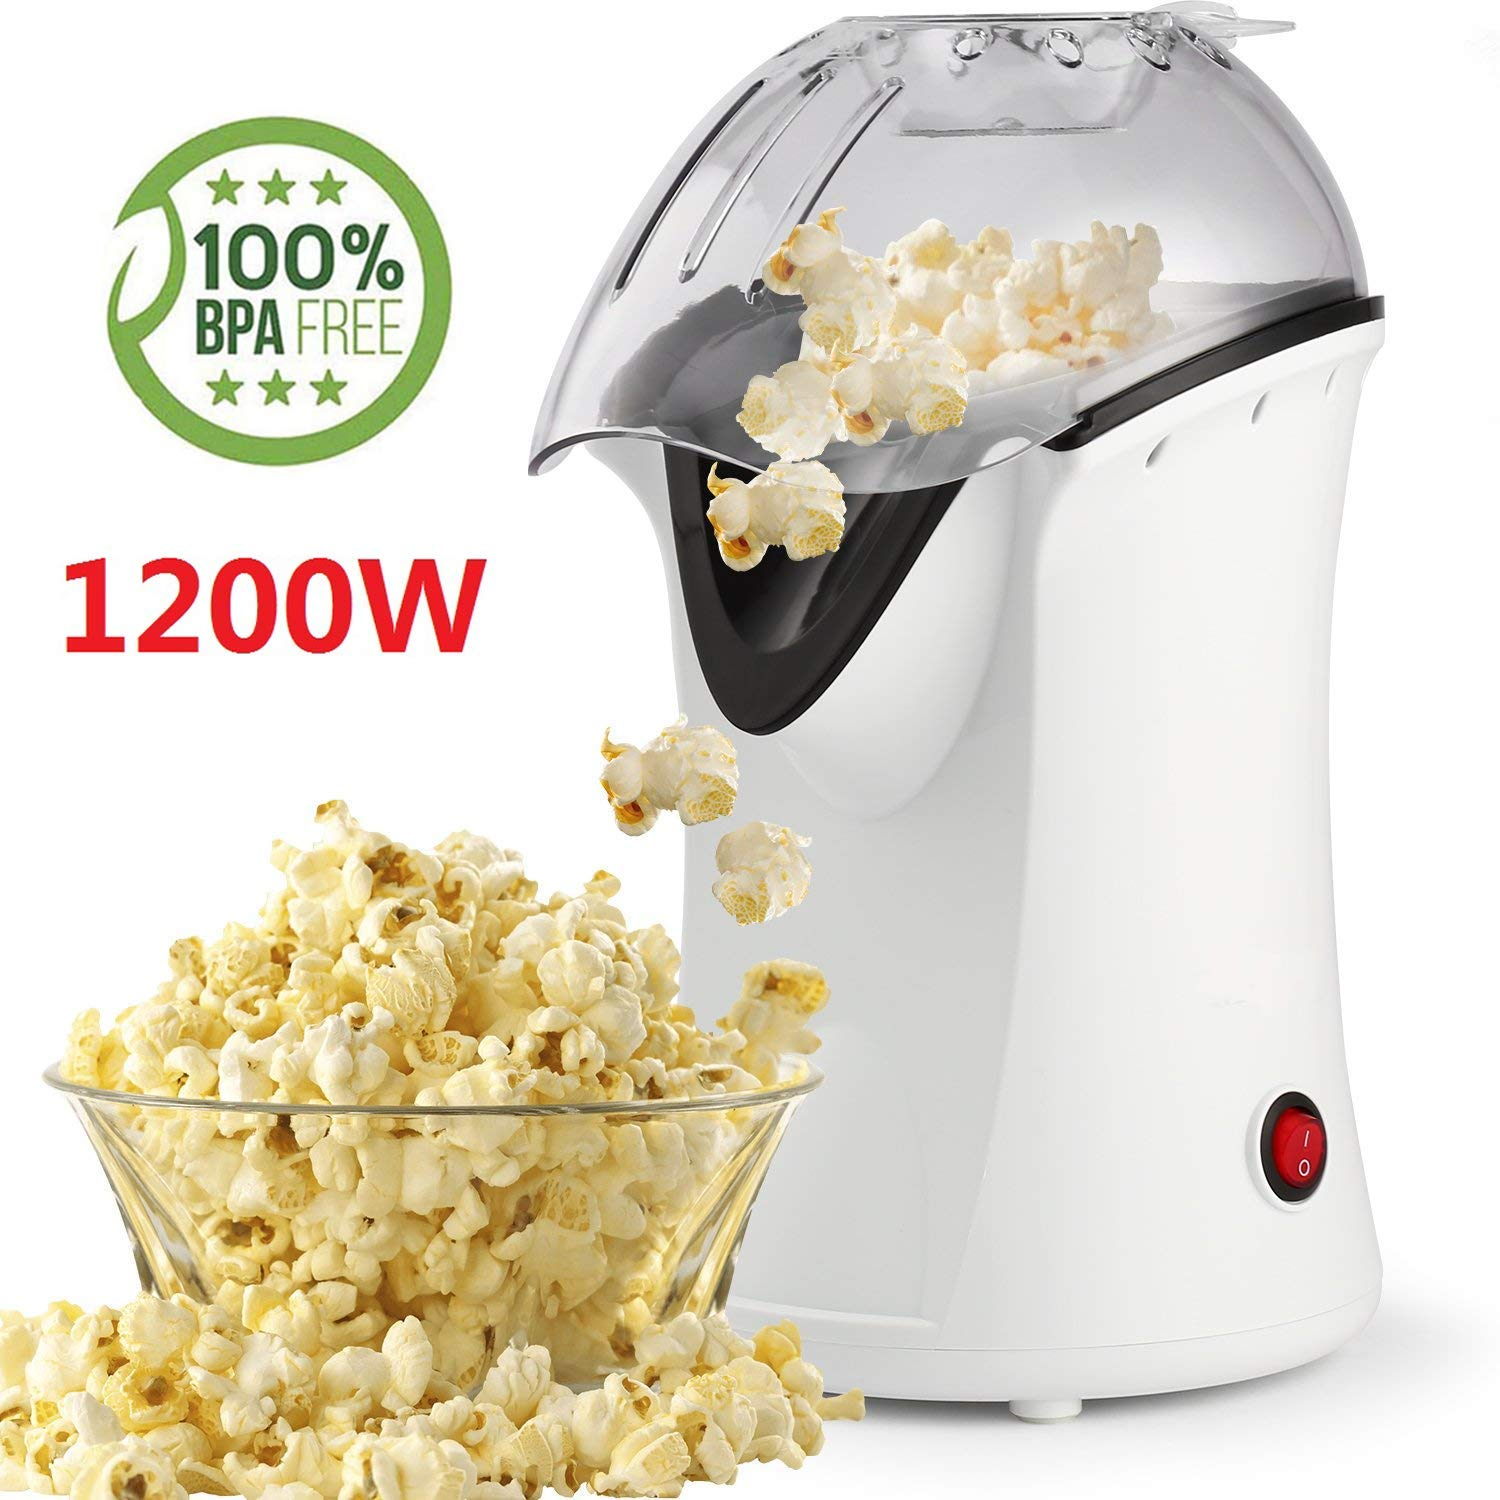 1200W Popcorn Machine Electric Machine Maker 4 Cups of Popcorn, Hot Air Popcorn Popper with Wide Mouth Design (US STOCK)